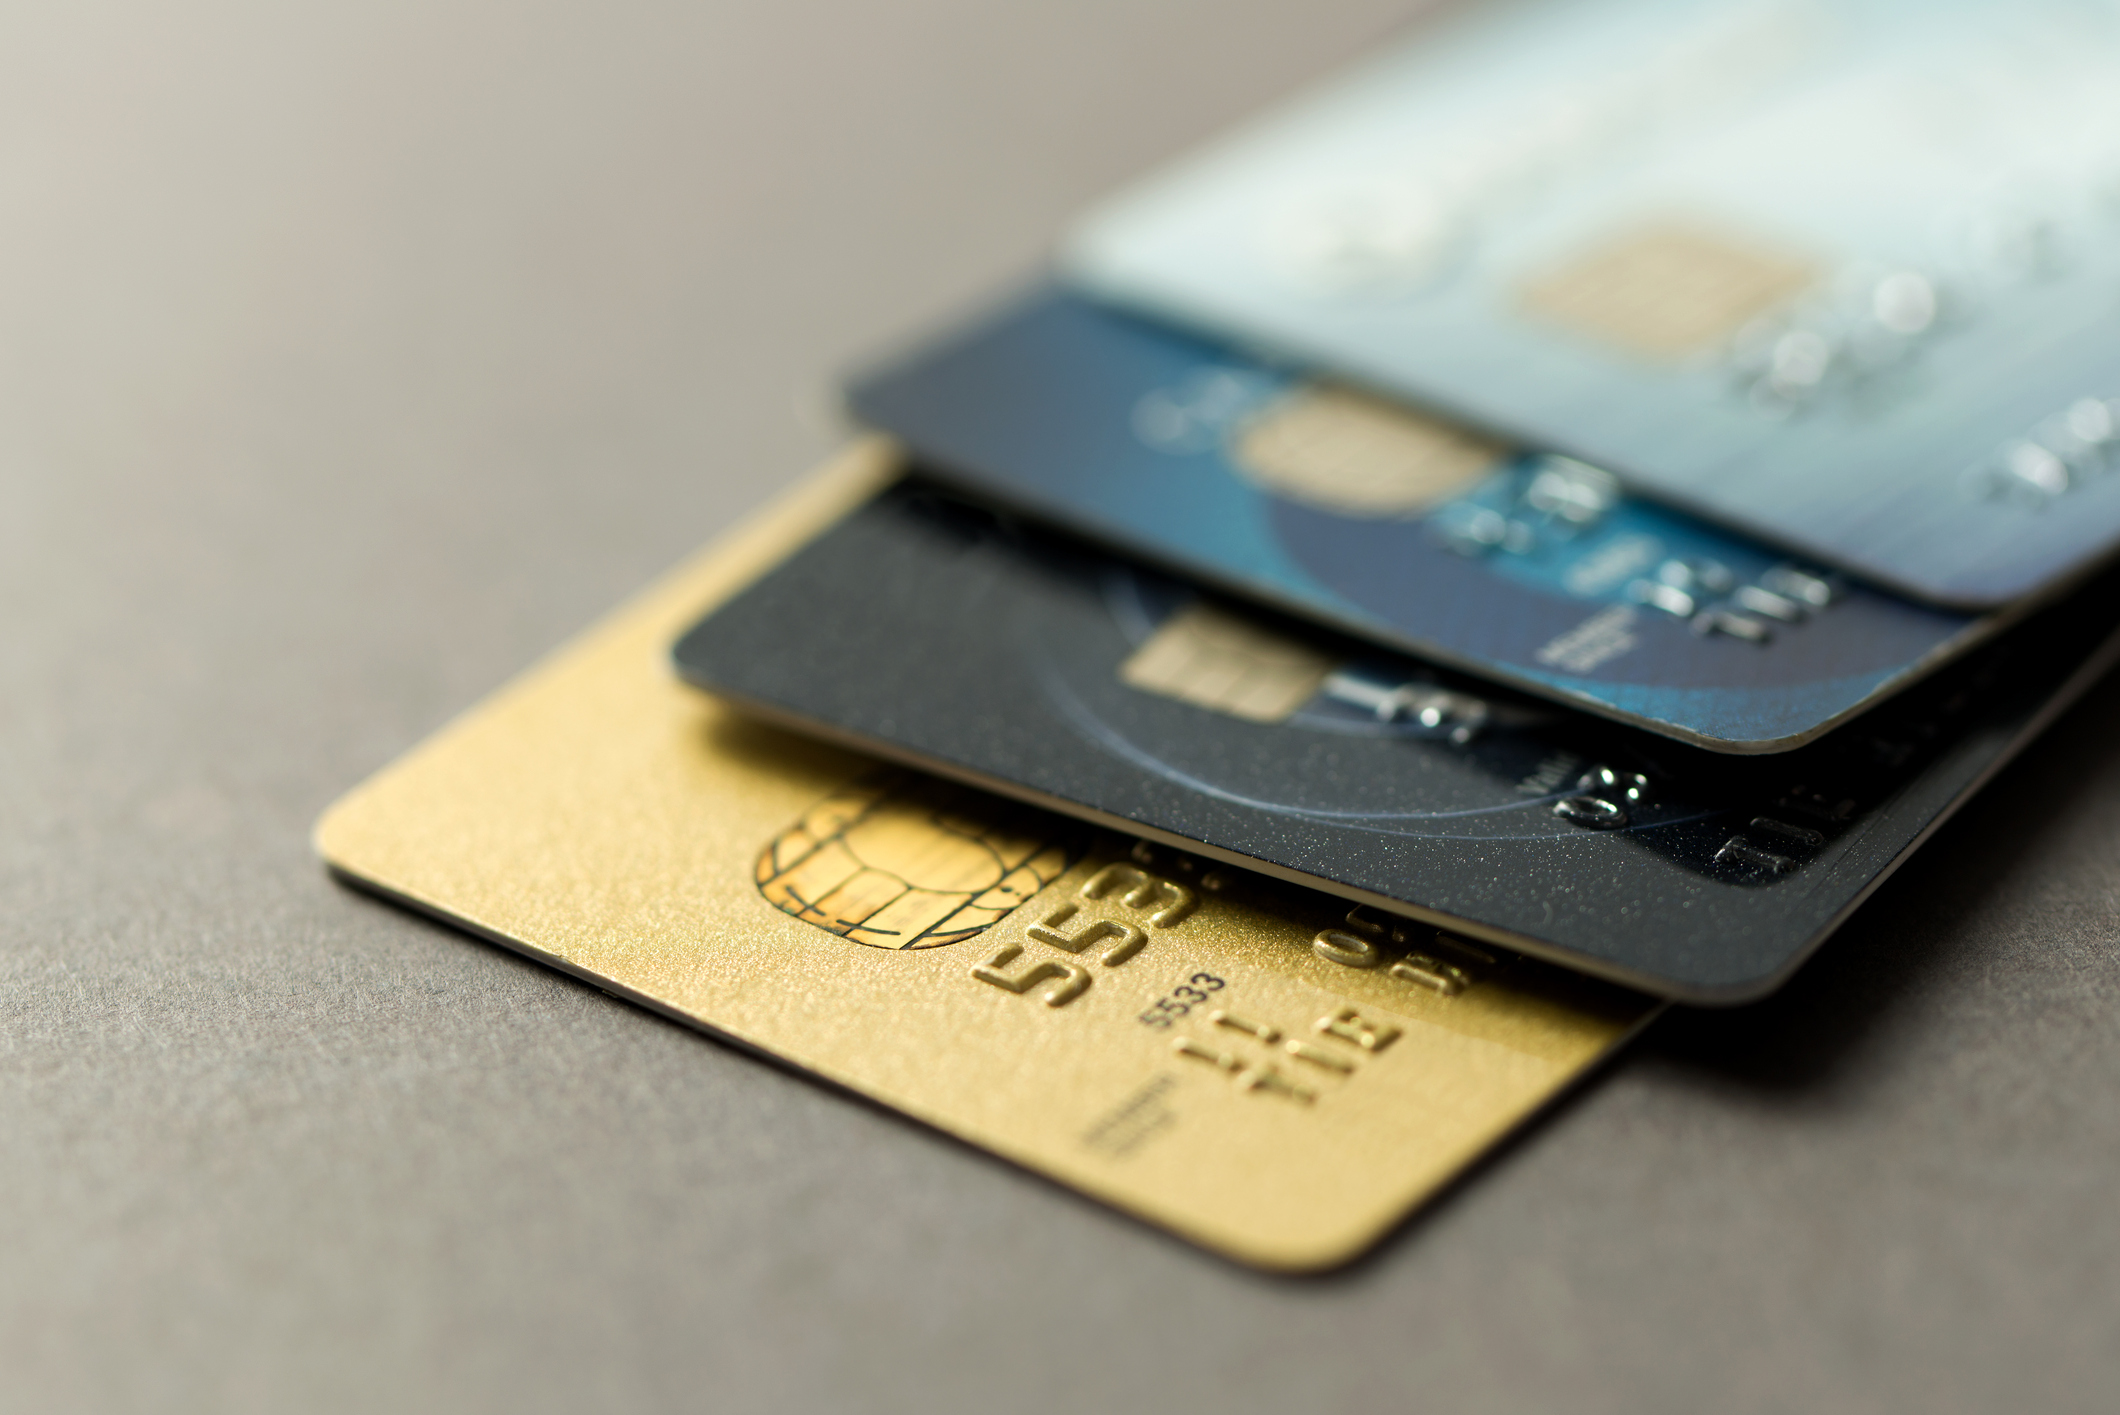 How to Stop Overspending With Credit Cards in 5 Easy Steps